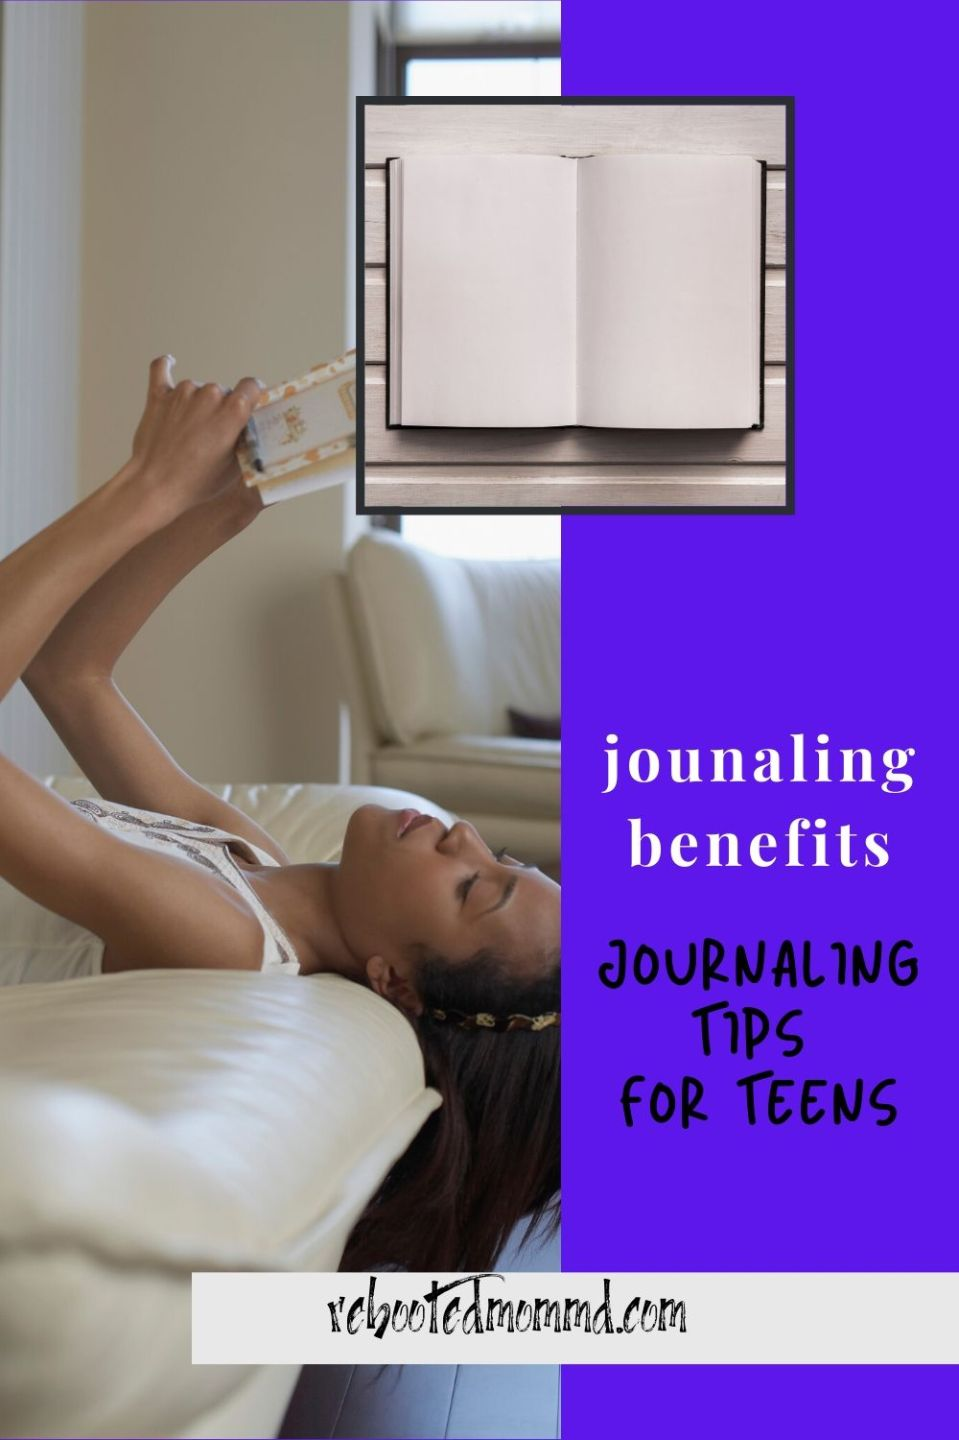 Journaling Tips for Teens